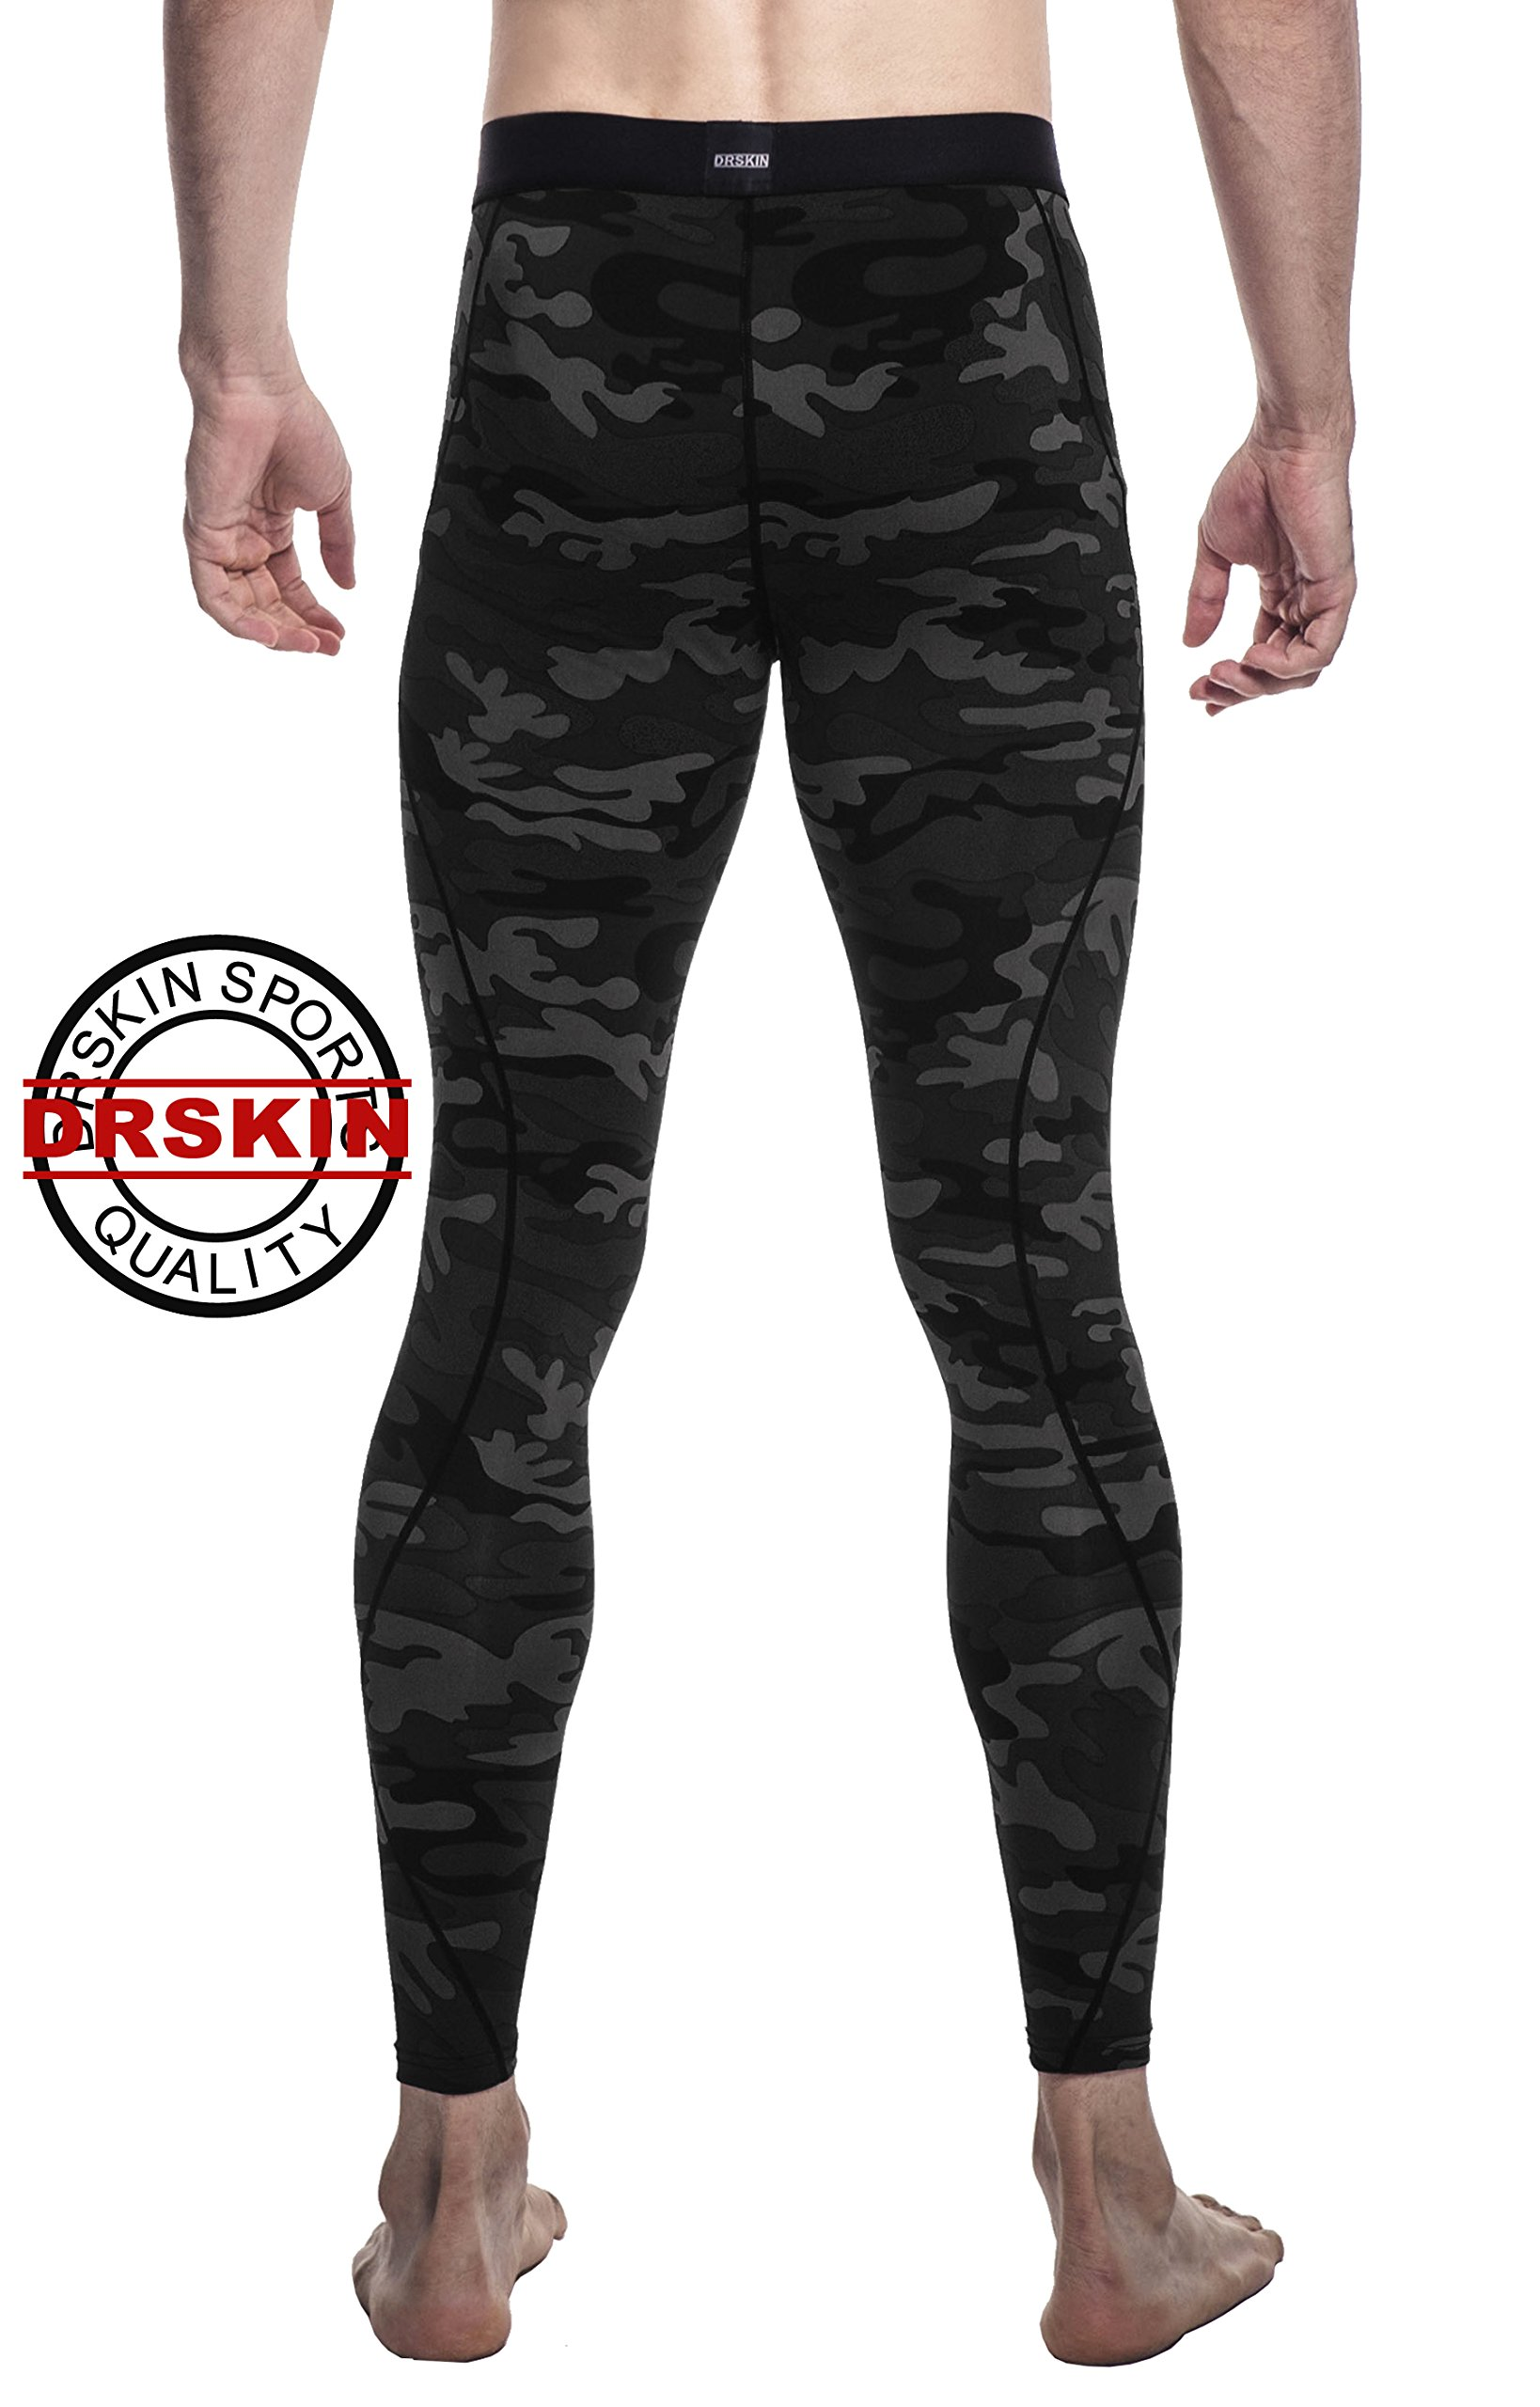 DRSKIN Men's Compression Dry Cool Sports Tights Pants ...